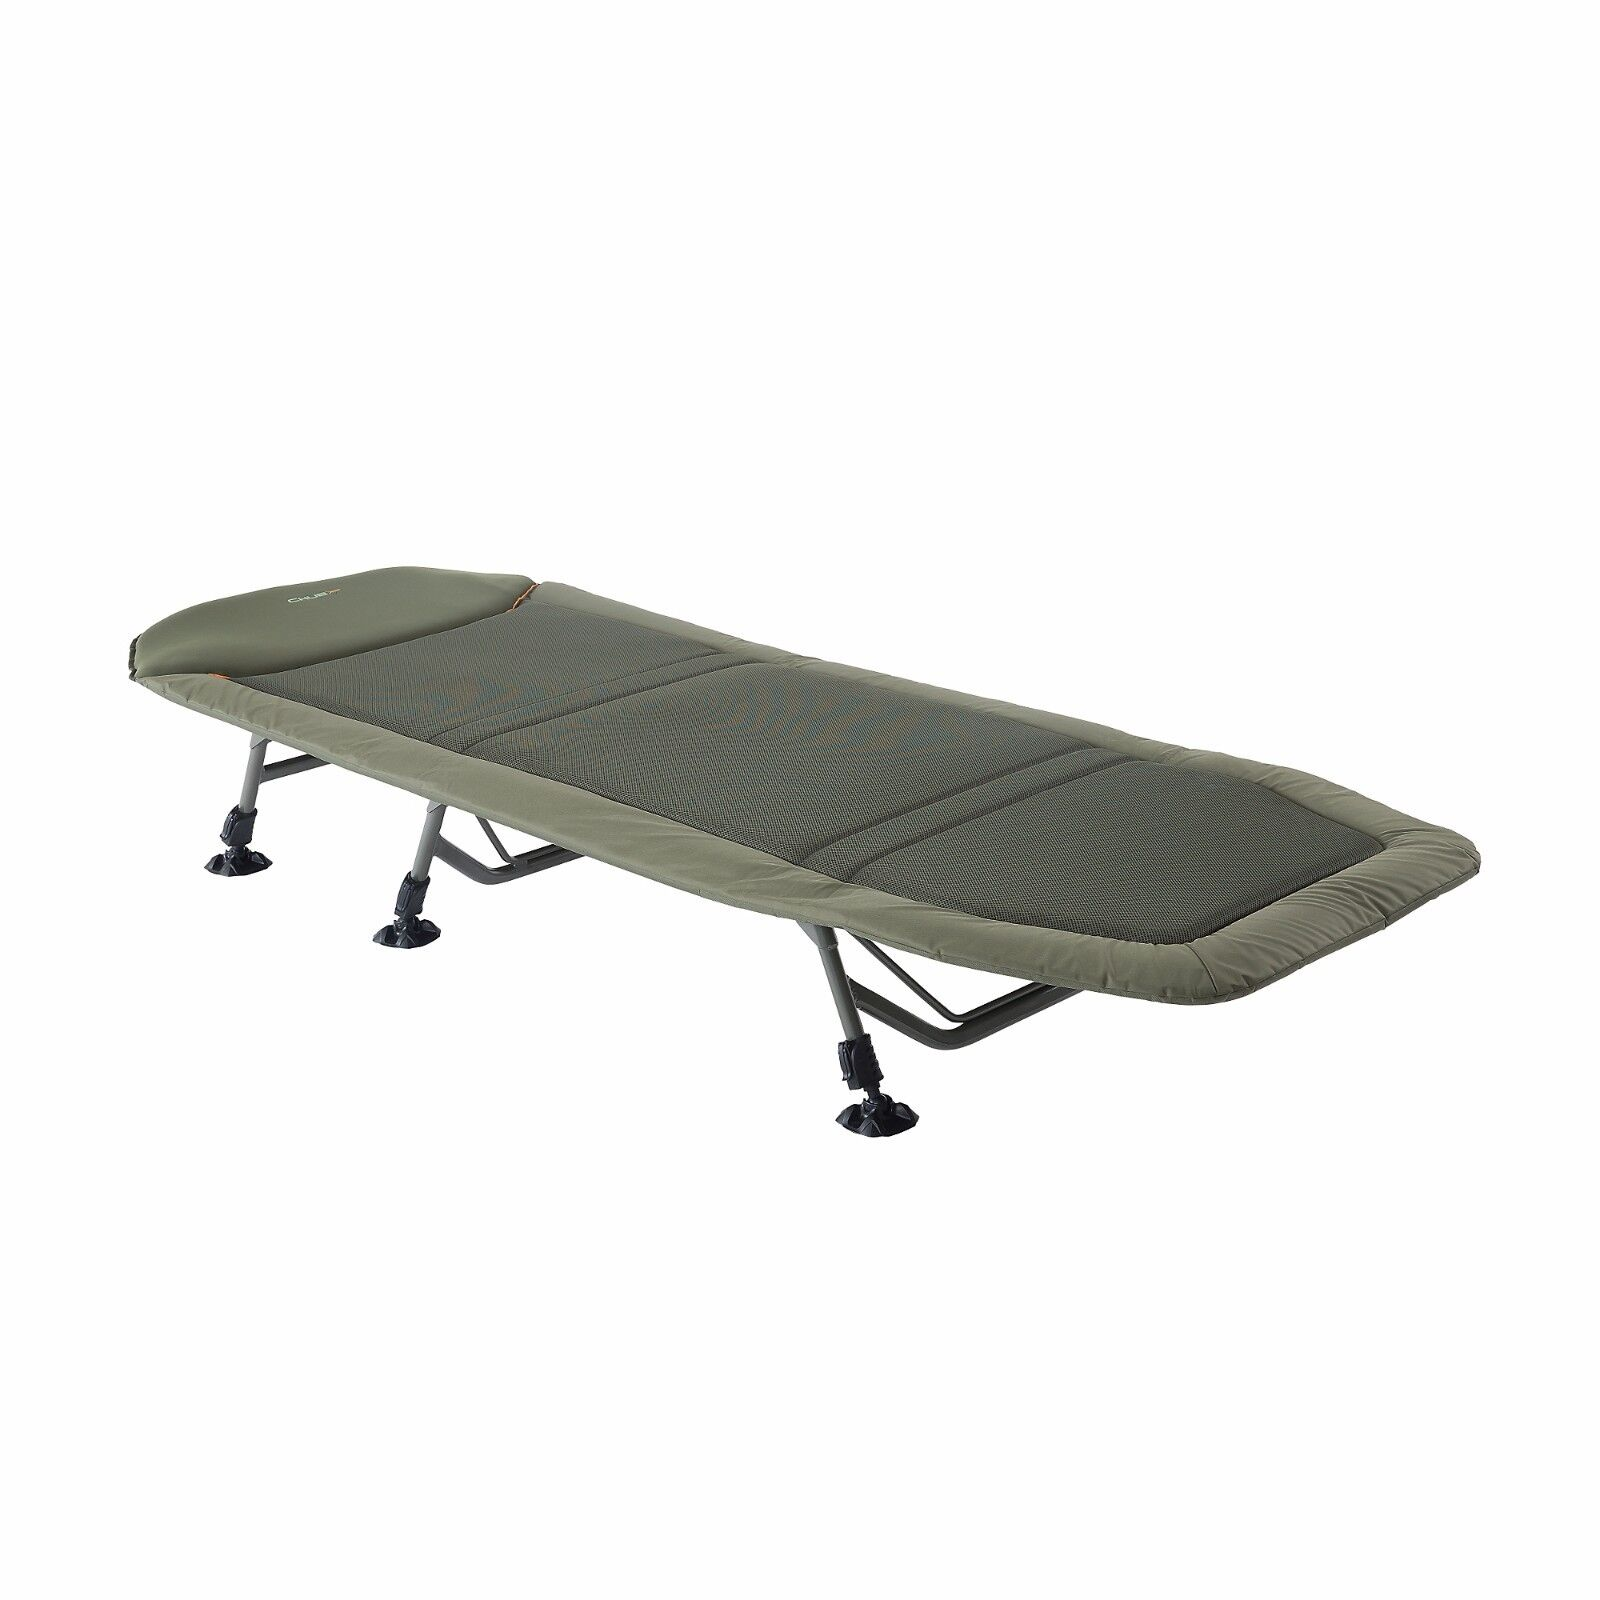 Chub Outkast 6 Leg Folding Flatbed - Aluminium Frame, Carp Fishing Bed